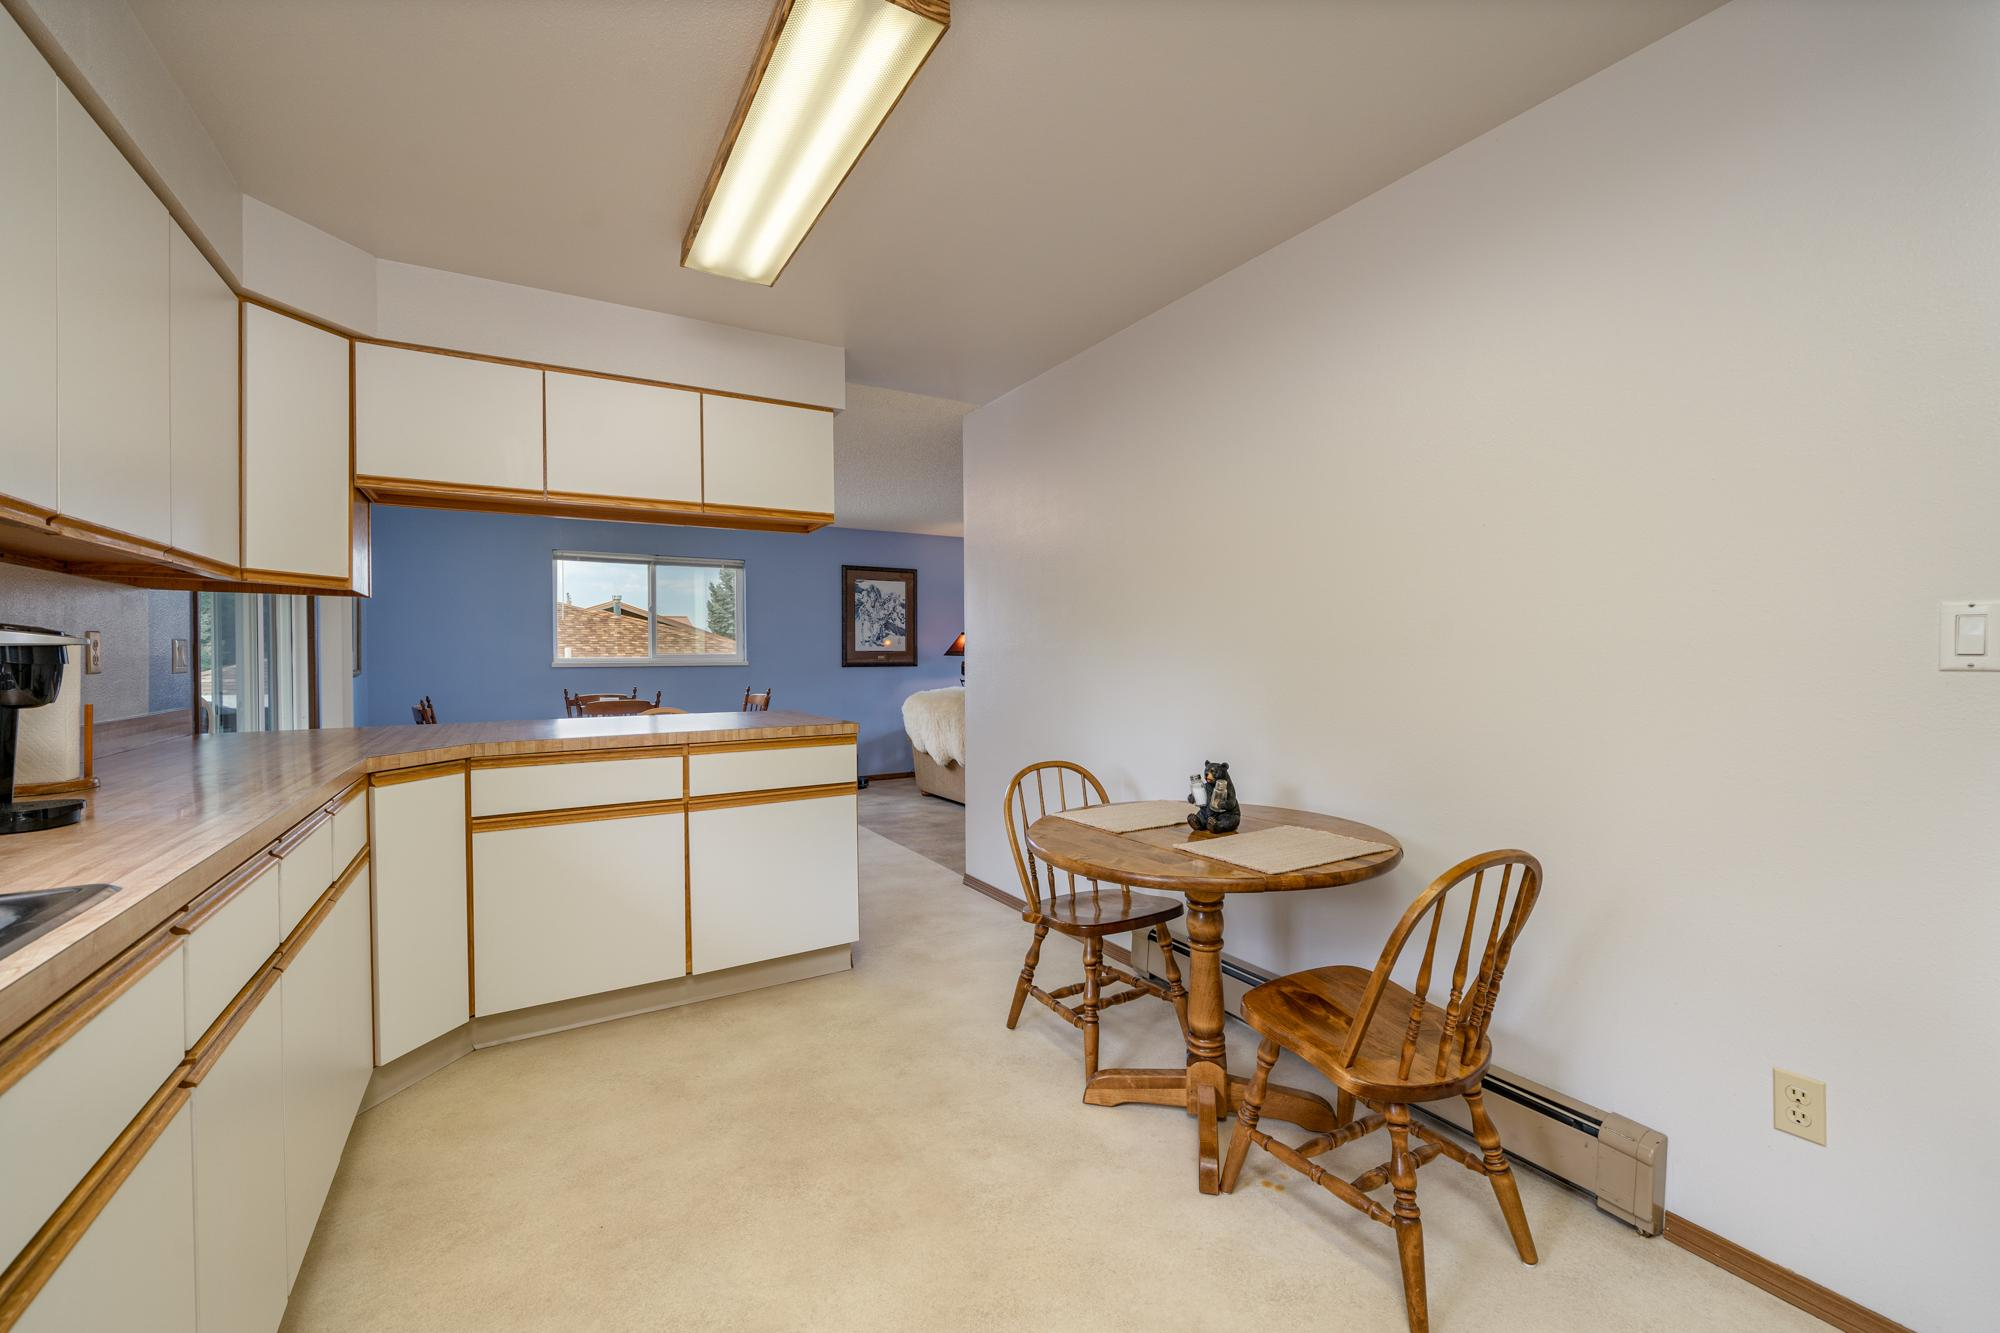 Kitchen with Breakfast Nook - 1311 Manchester Dr Montrose, CO 81401 - Atha Team Realty Agents